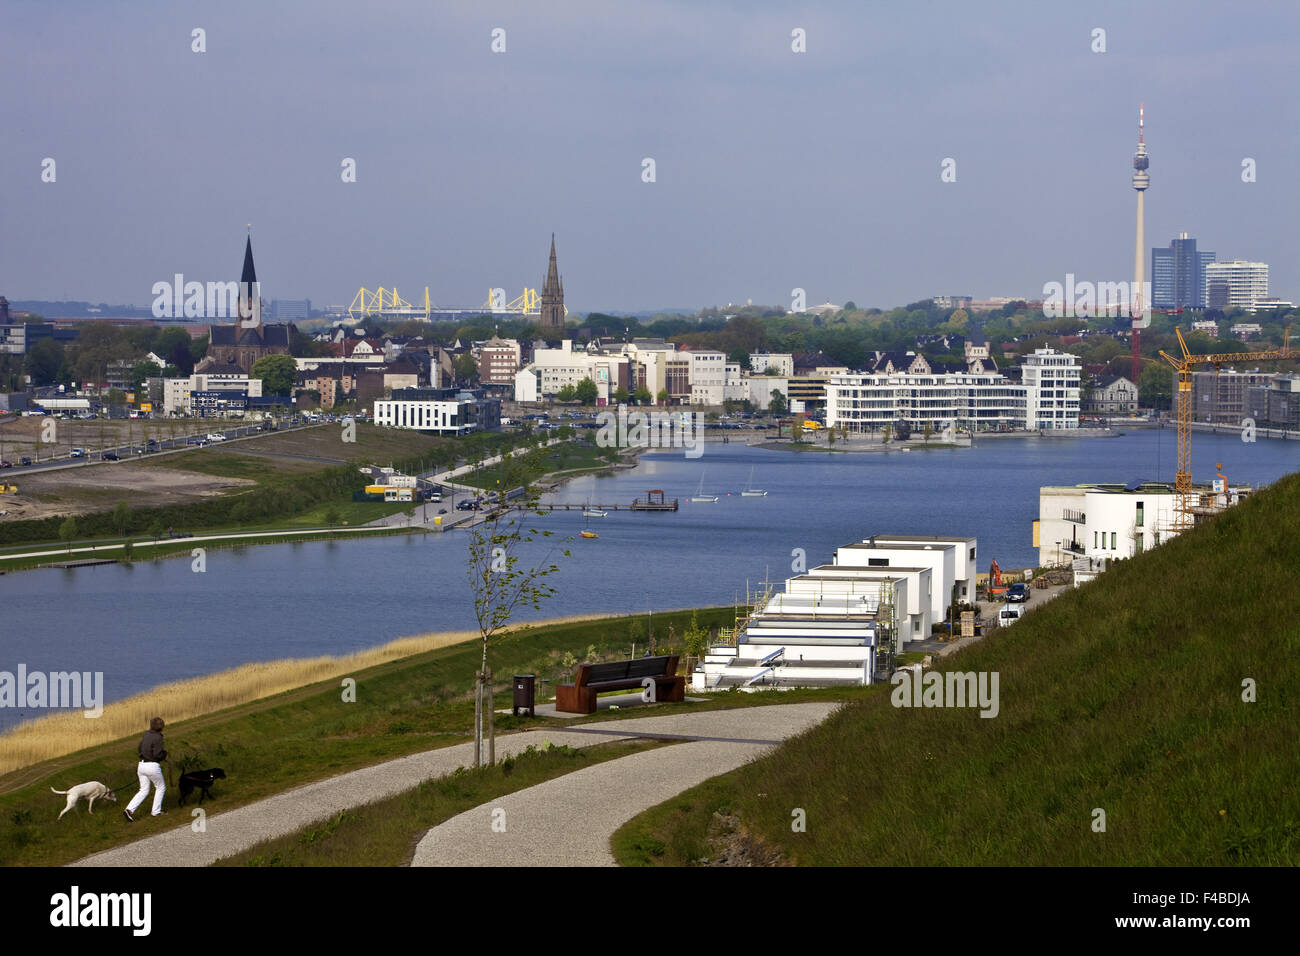 Phoenix Lake, Dortmund, Germany. - Stock Image